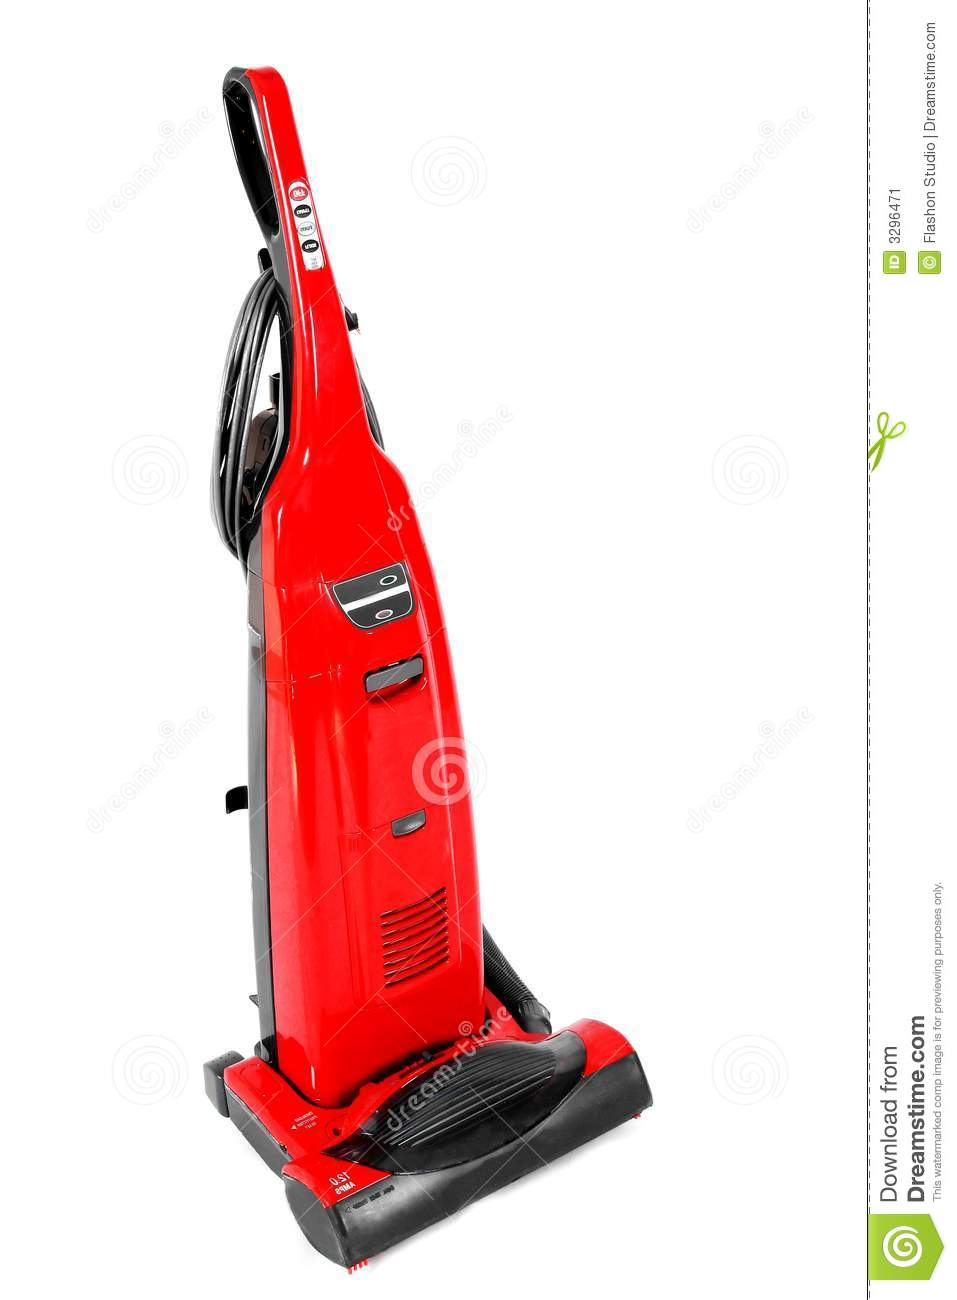 Superior Carpet Vacuum Cleaner